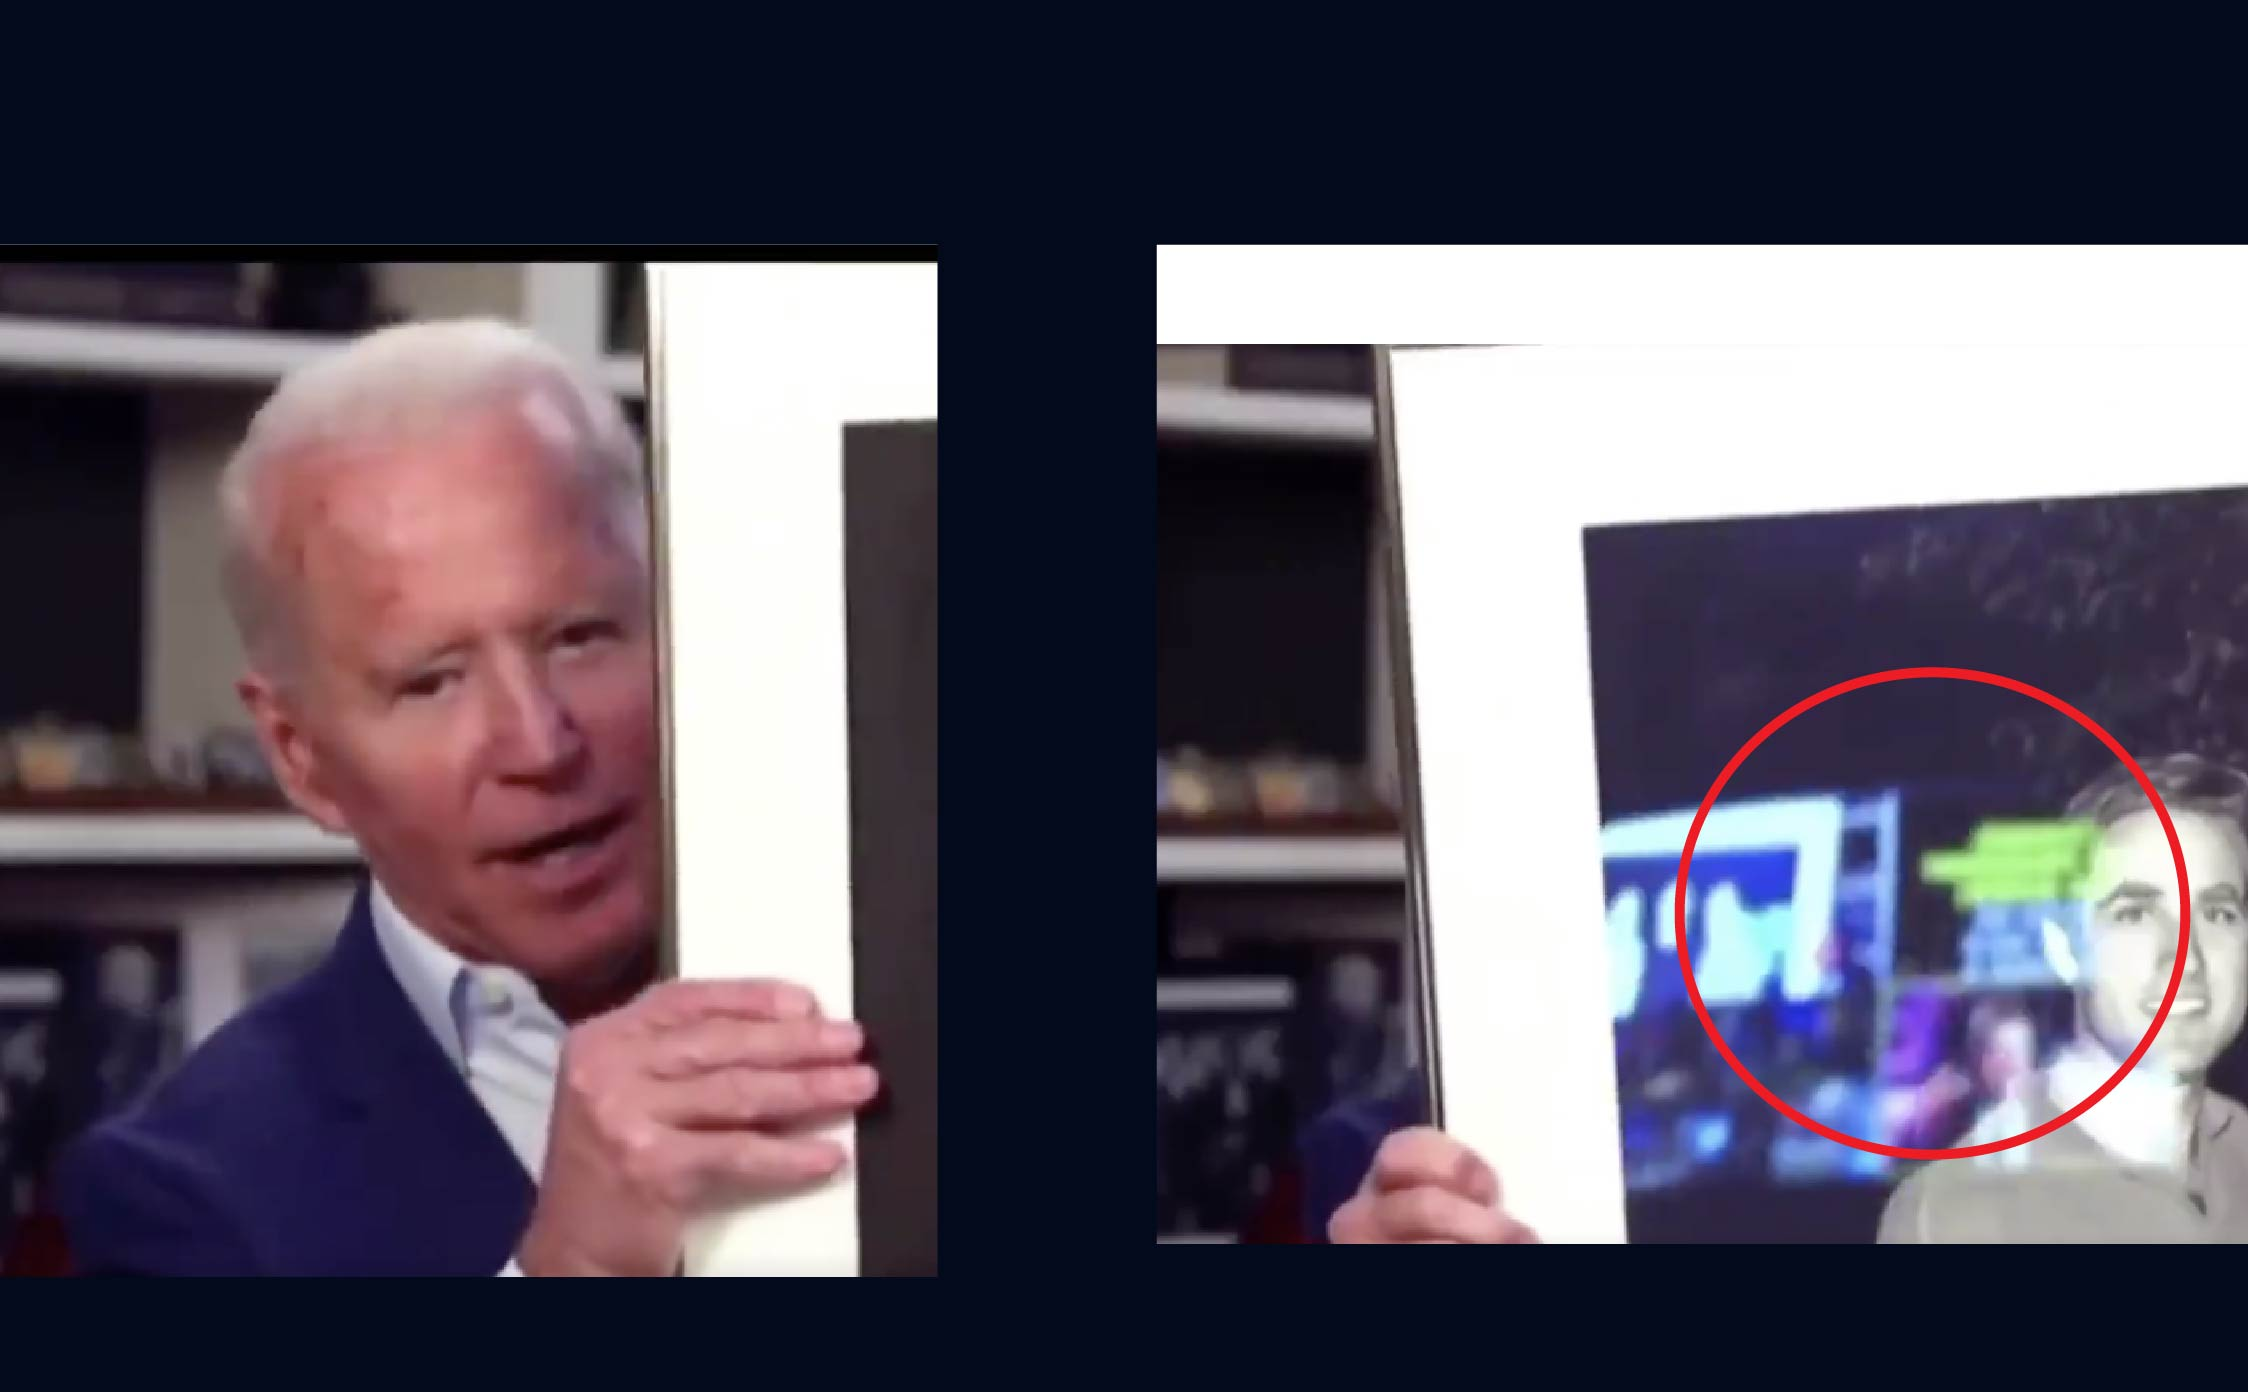 [VIDEO] Did Biden Just Accidentally Reveal His Teleprompter in the Reflection of a Framed Photo He Held Up?